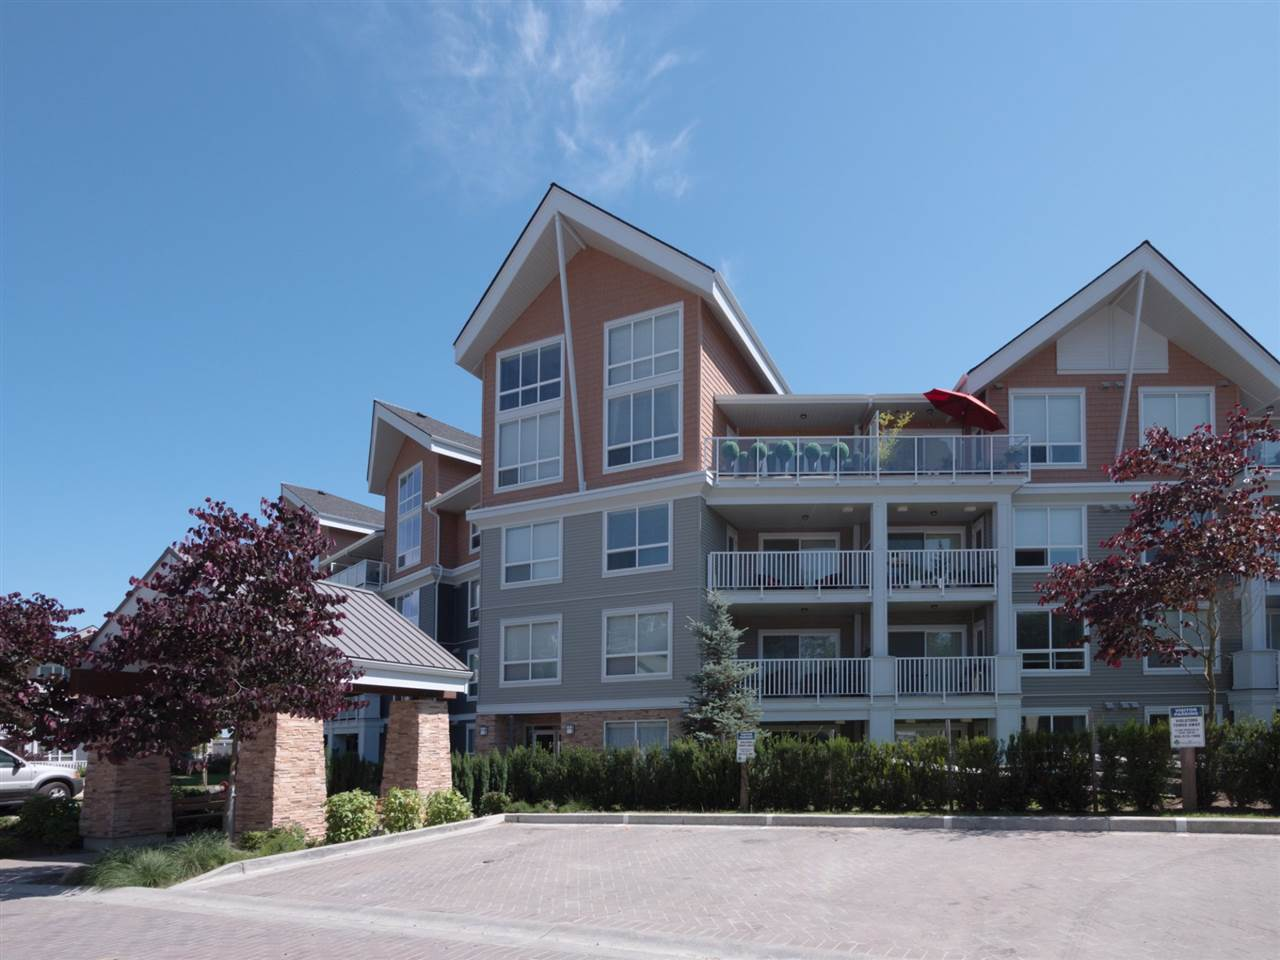 Condo Apartment at 406 6480 194 STREET, Unit 406, Cloverdale, British Columbia. Image 1